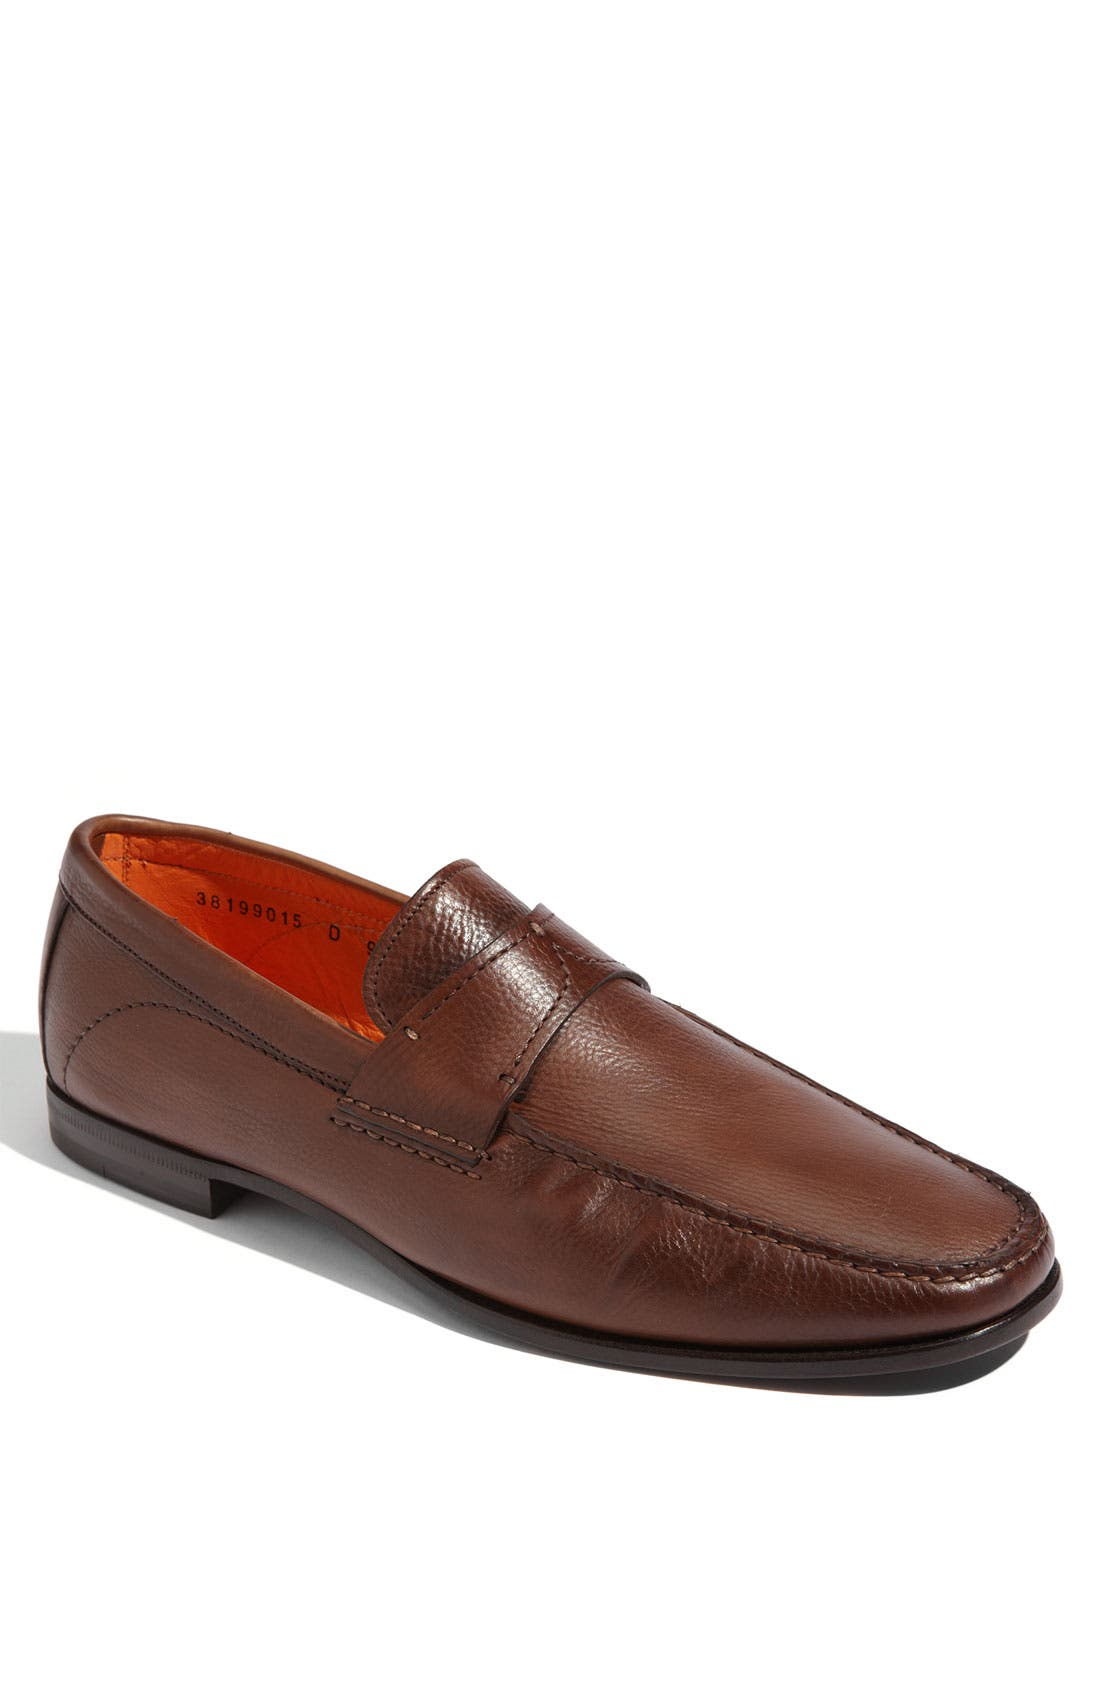 Main Image - Santoni 'Quest' Loafer (Men)